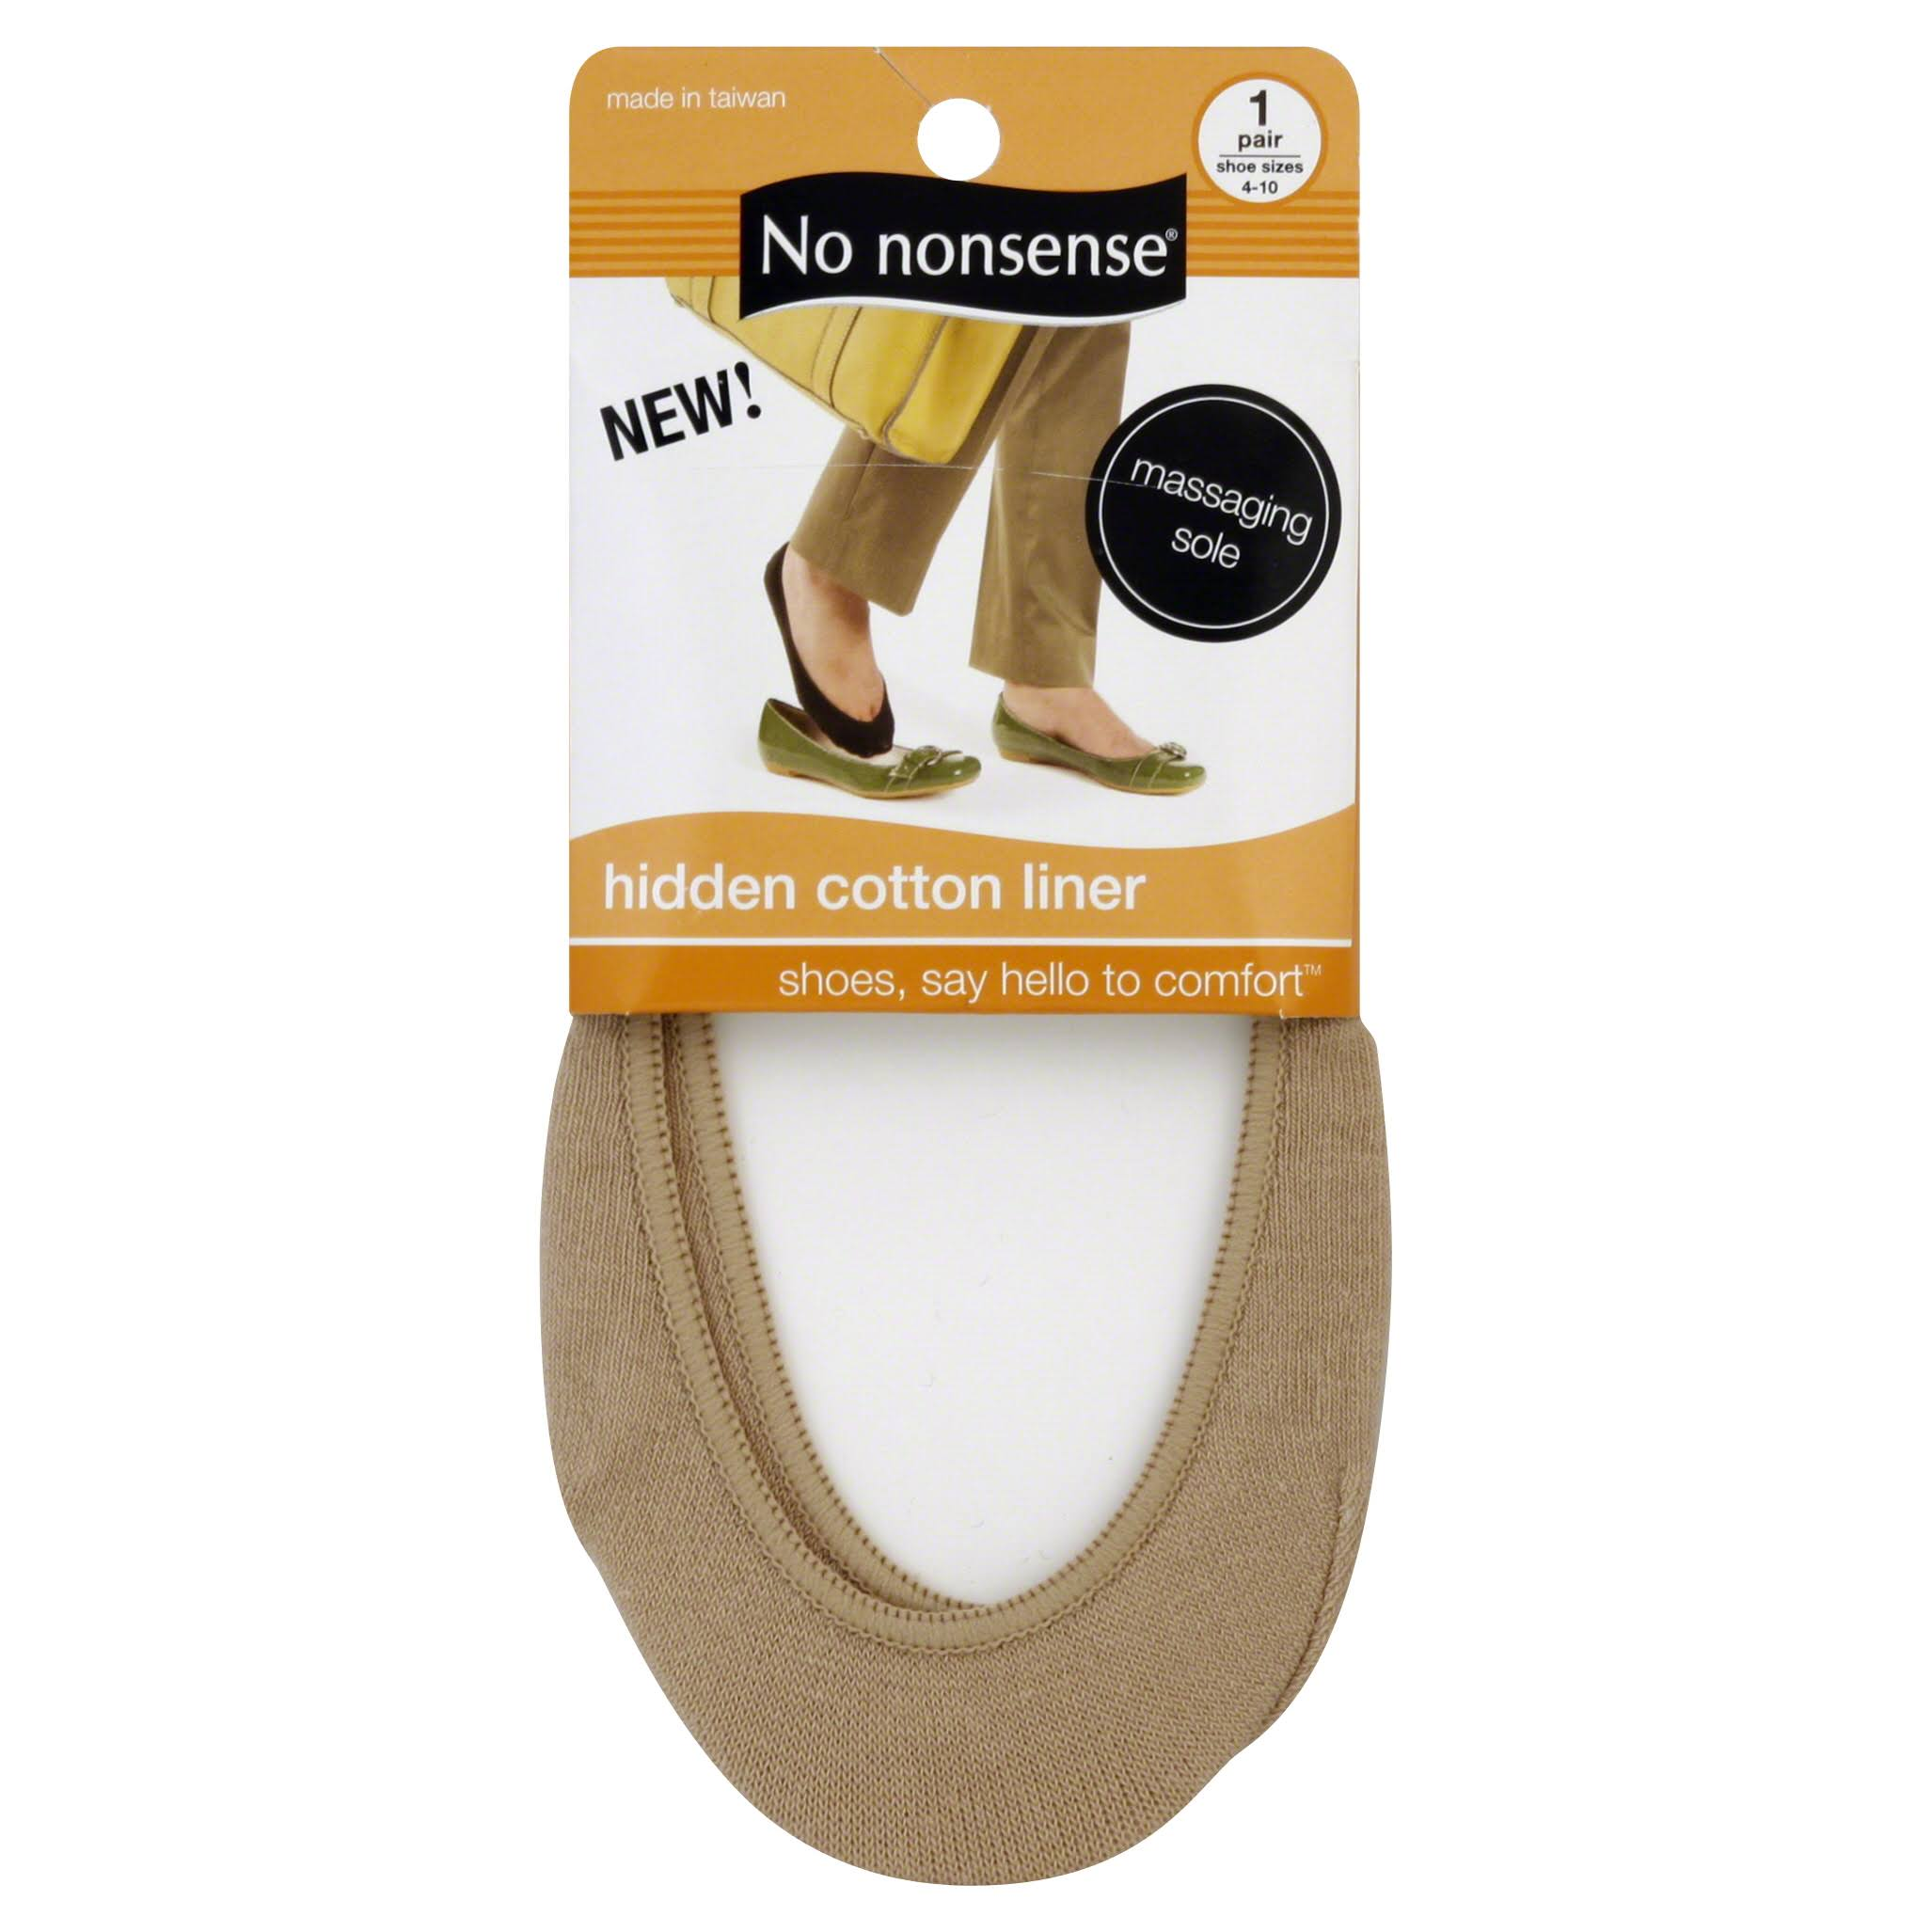 No Nonsense Hidden Cotton Liner Socks - Nude, 1 Pair